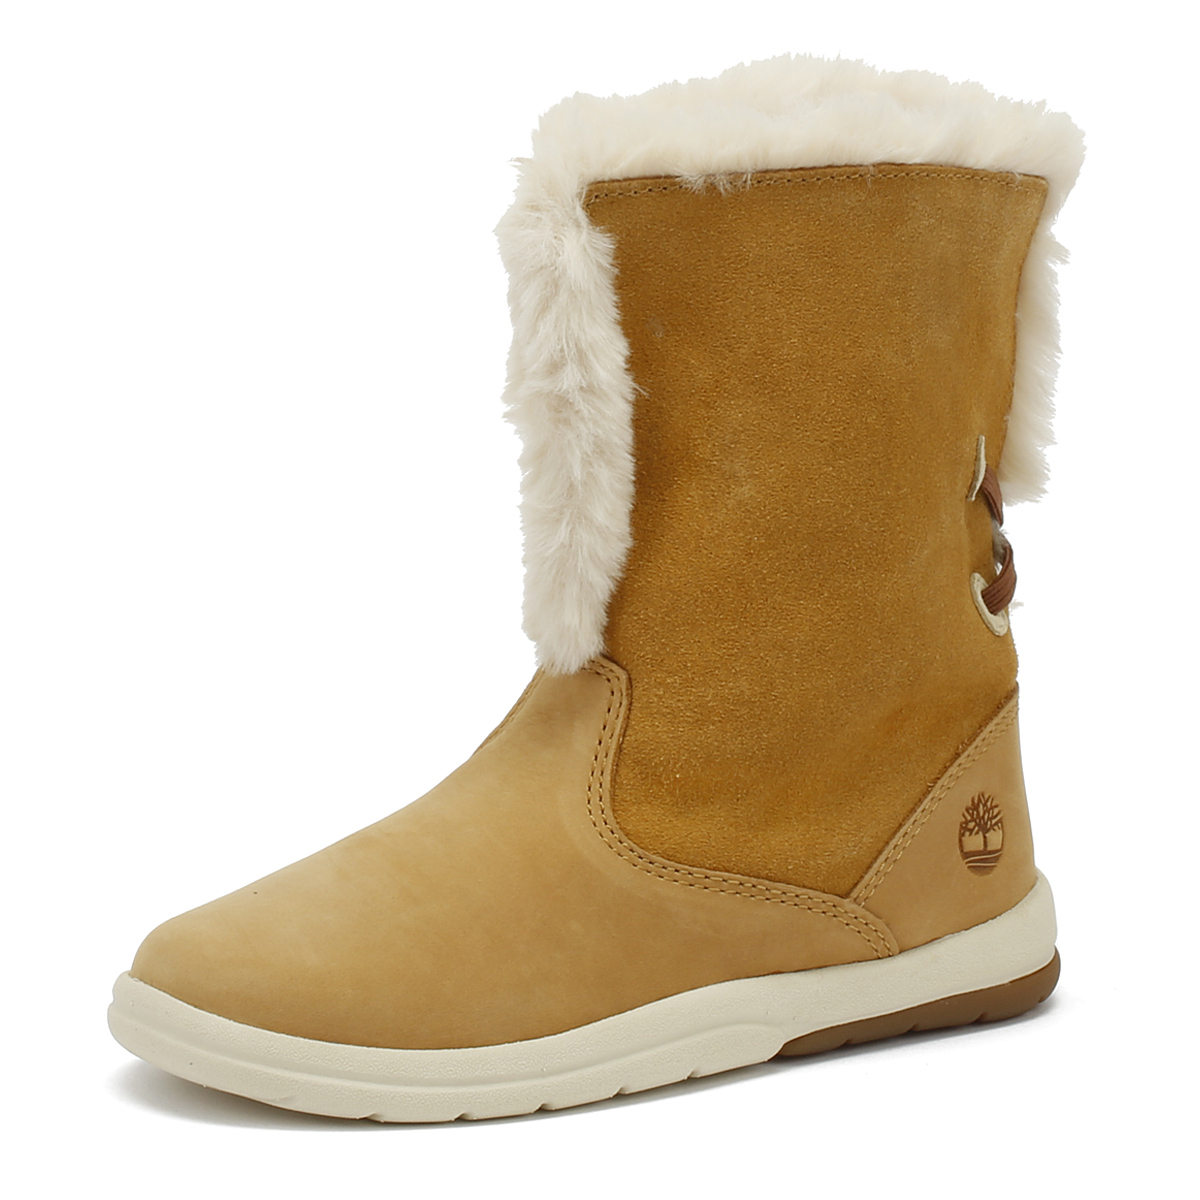 089a283b98 Details about Timberland Tracks Toddlers Wheat Yellow Boots Premium Leather  Kids Winter Shoes